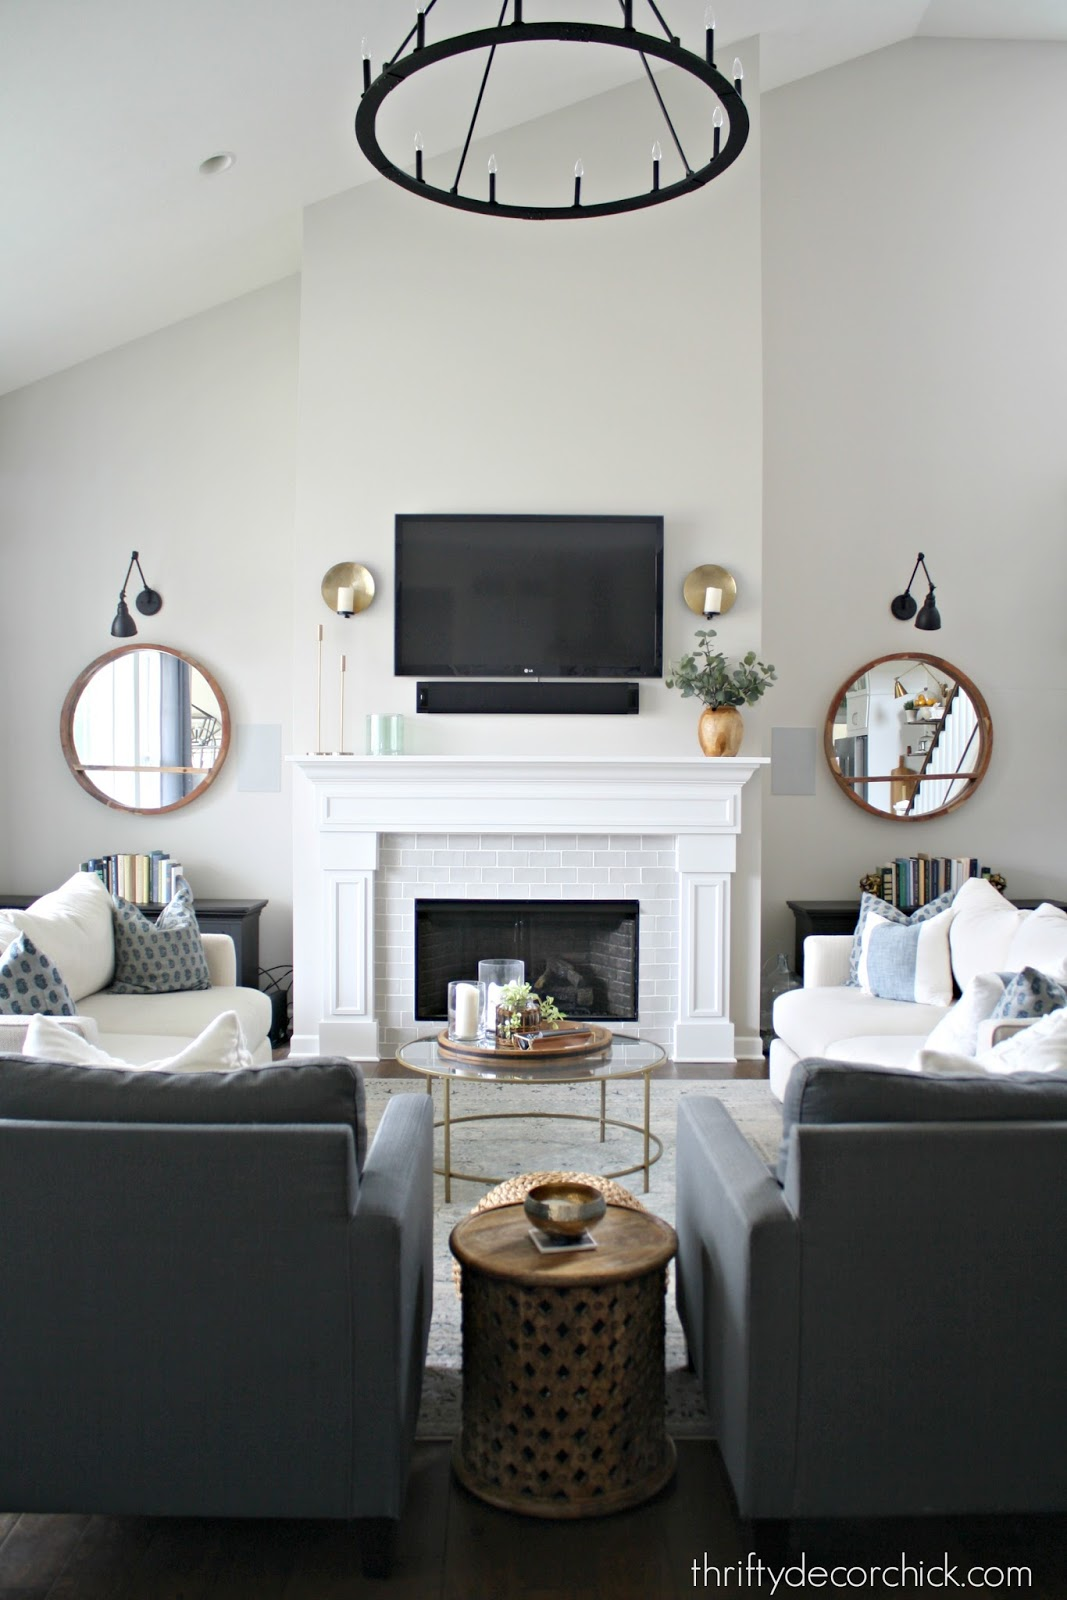 Tall Fireplace Wall Transformation With Paint From Thrifty Decor Chick